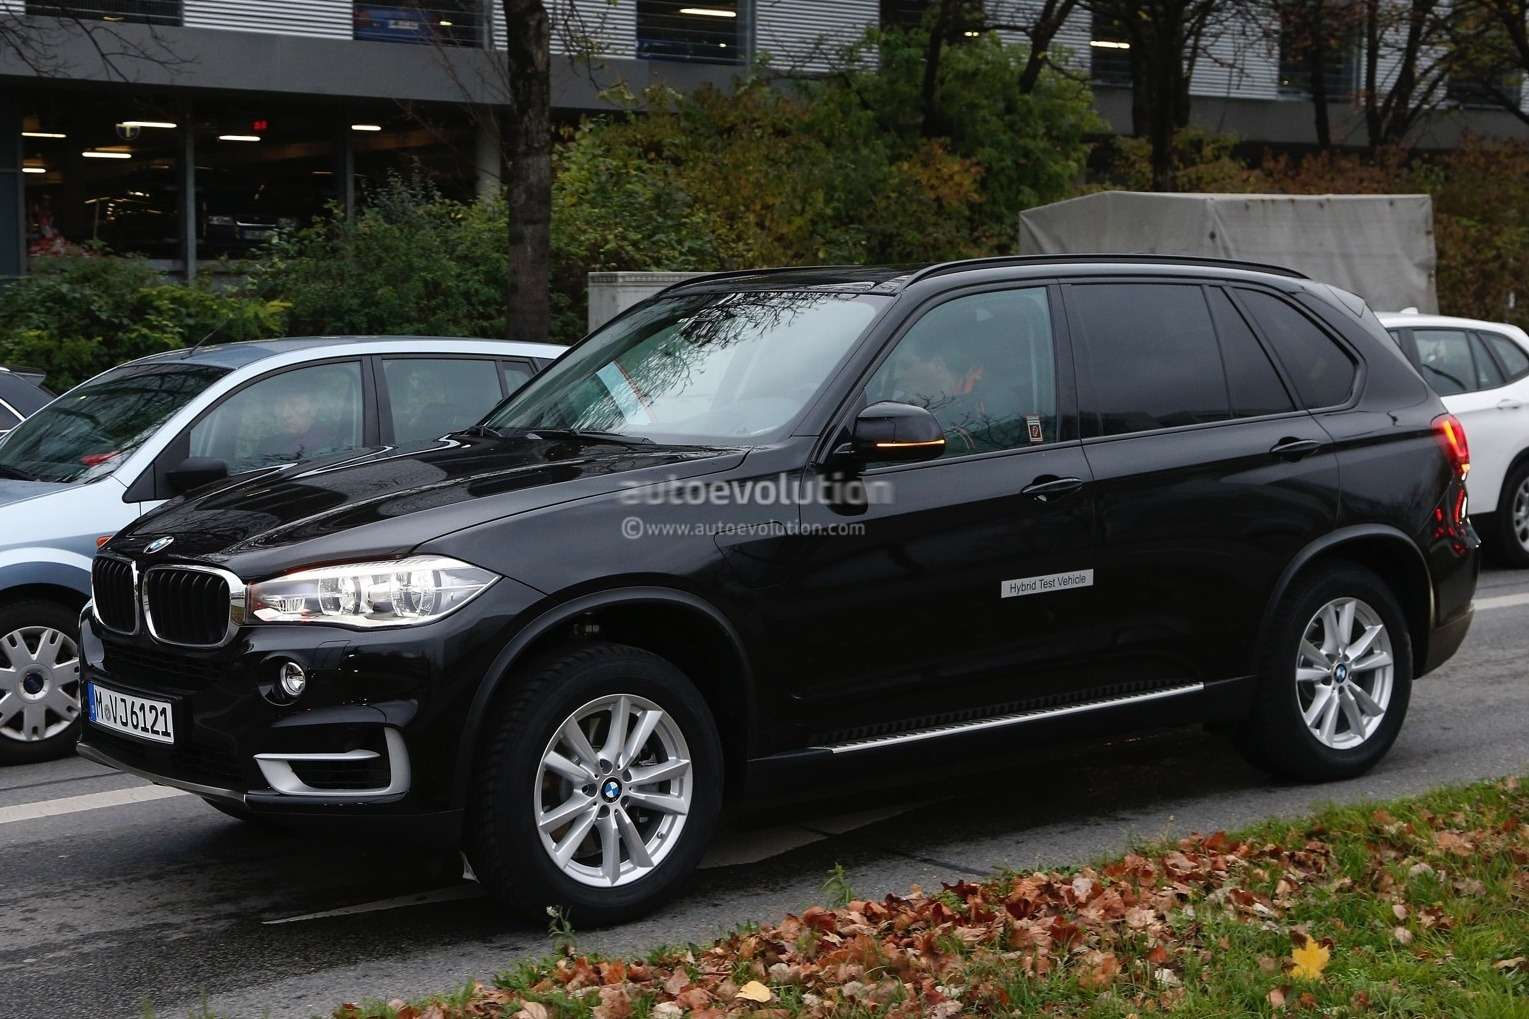 spyshots-hybrid-bmw-x5-goes-out-for-tests-in-traffic-1080p-3_no_copyright